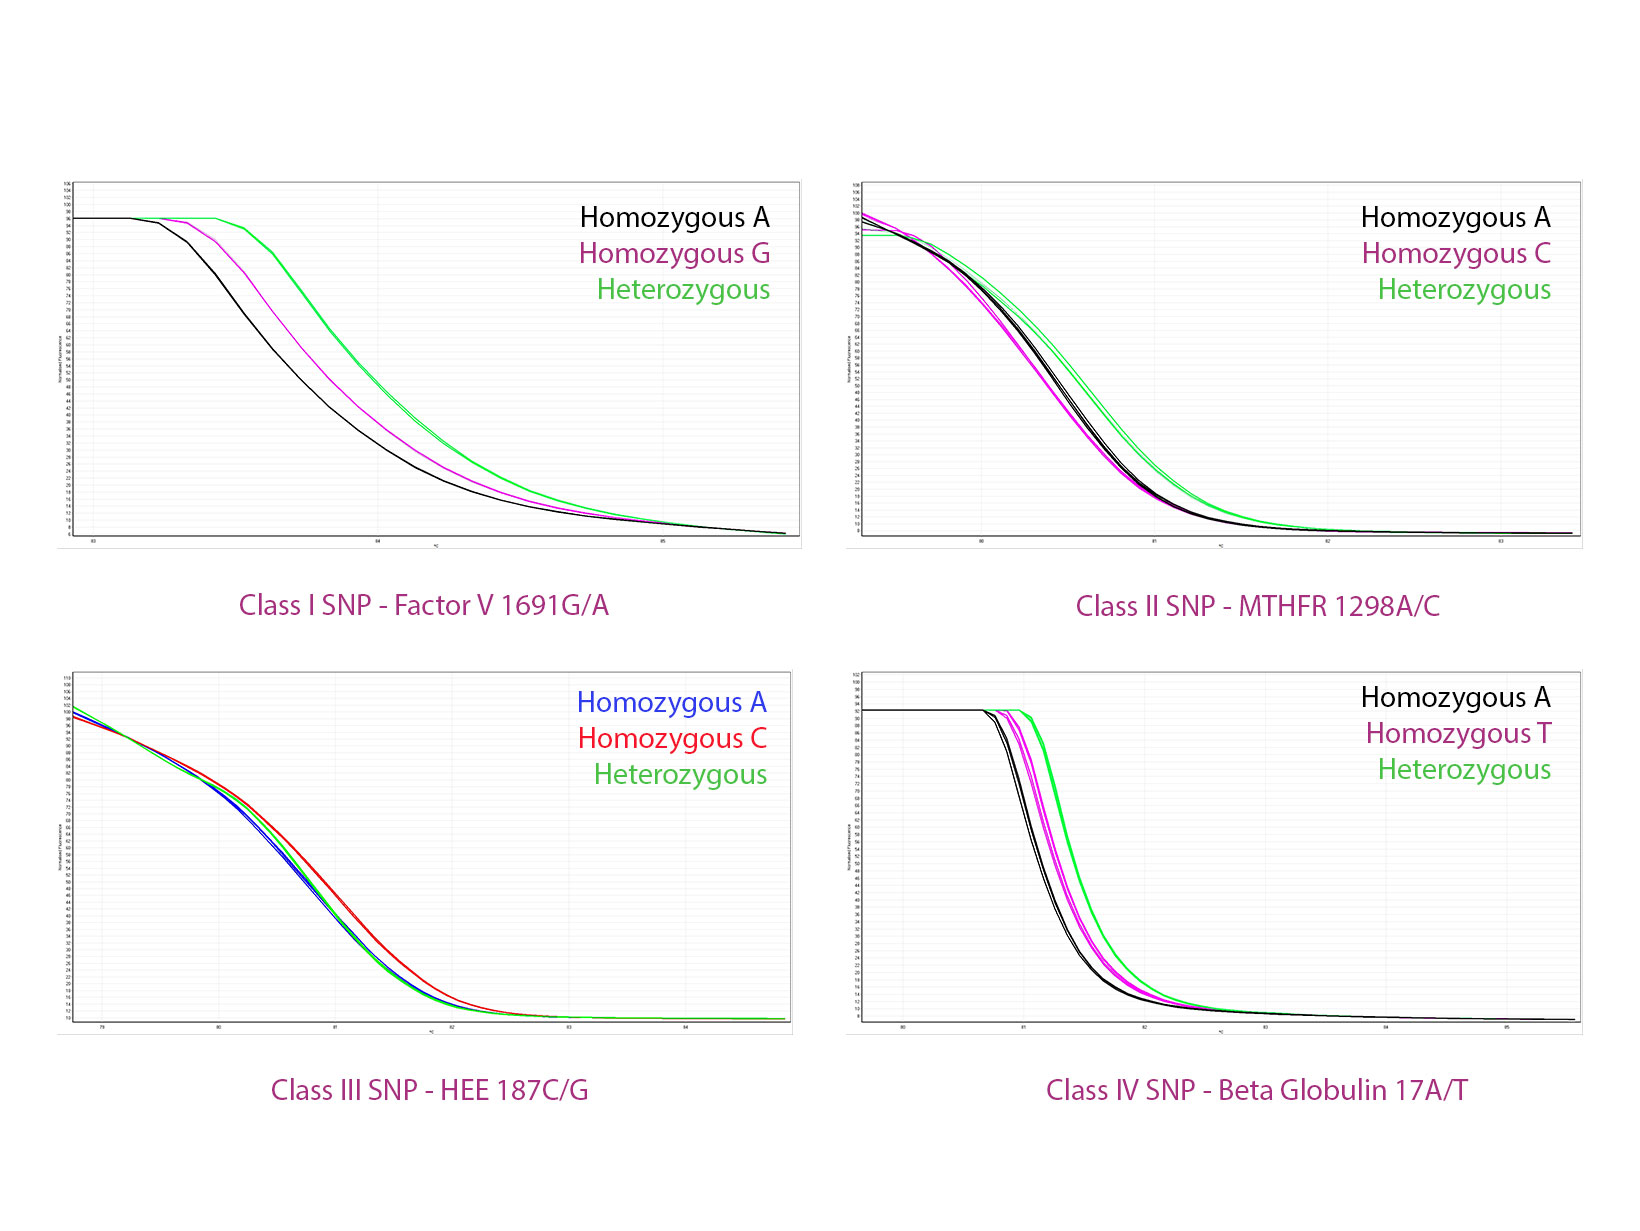 Data image showing qPCRBIO HRM Mix melt profiles for class I, II, III and IV single nucleotide polymorphisms